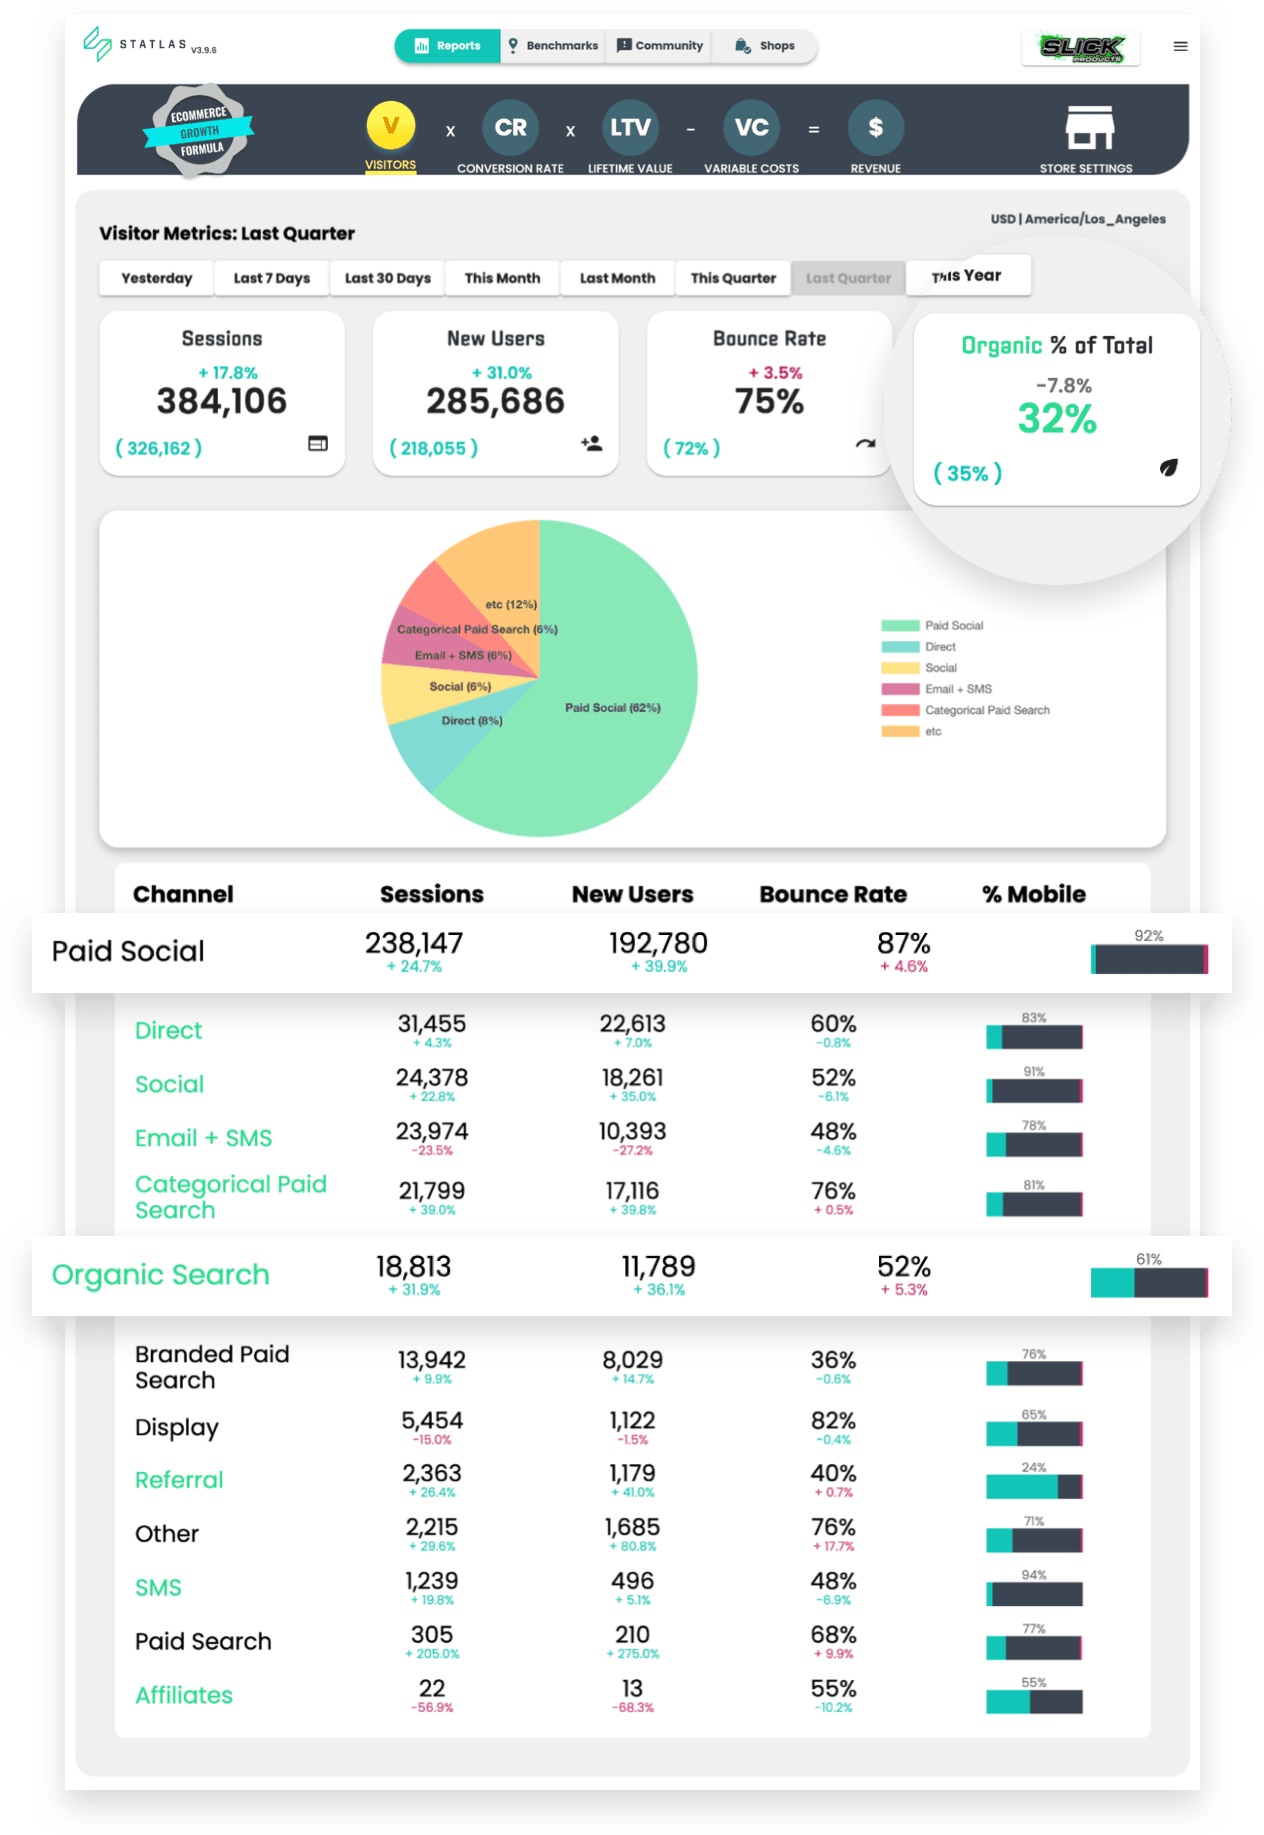 Overleveraged traffic sources revealed in Statlas analytics dashboard: 32% organic traffic, extremely high paid social traffic numbers